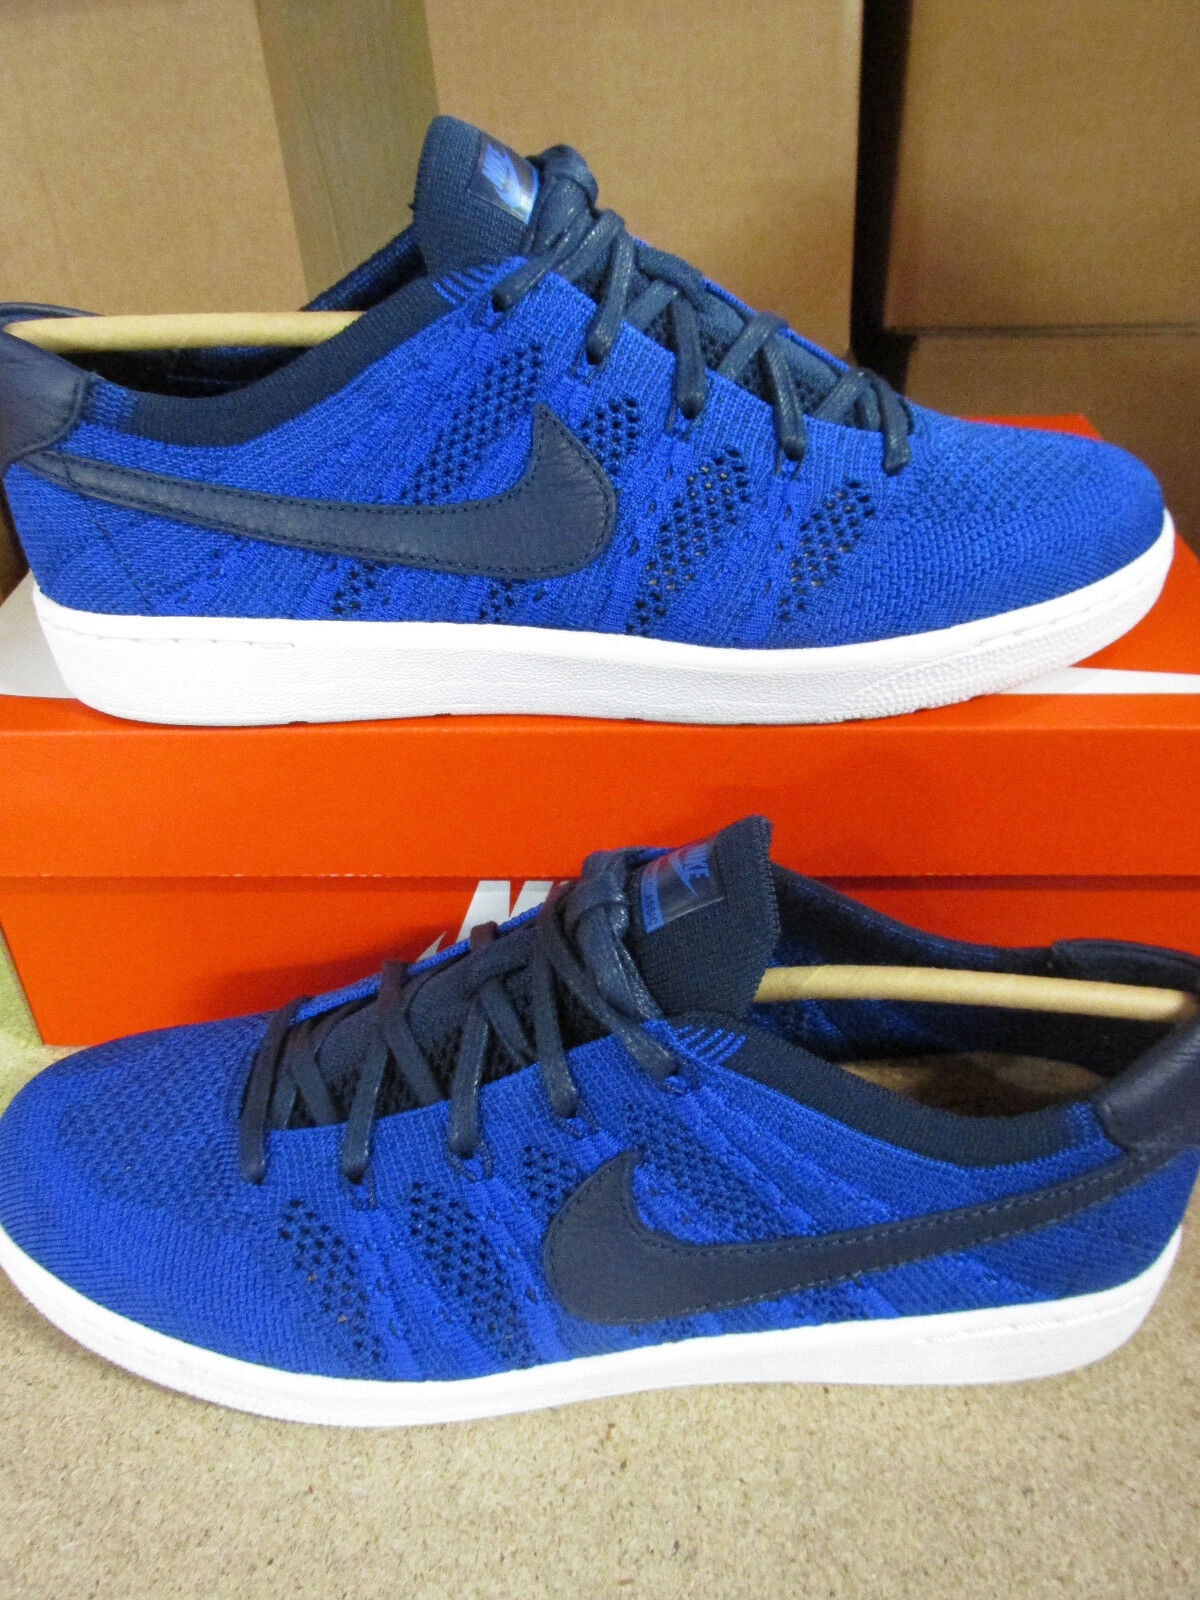 nike tennis classic ultra flyknit mens running trainers 830704 401 sneakers shoe